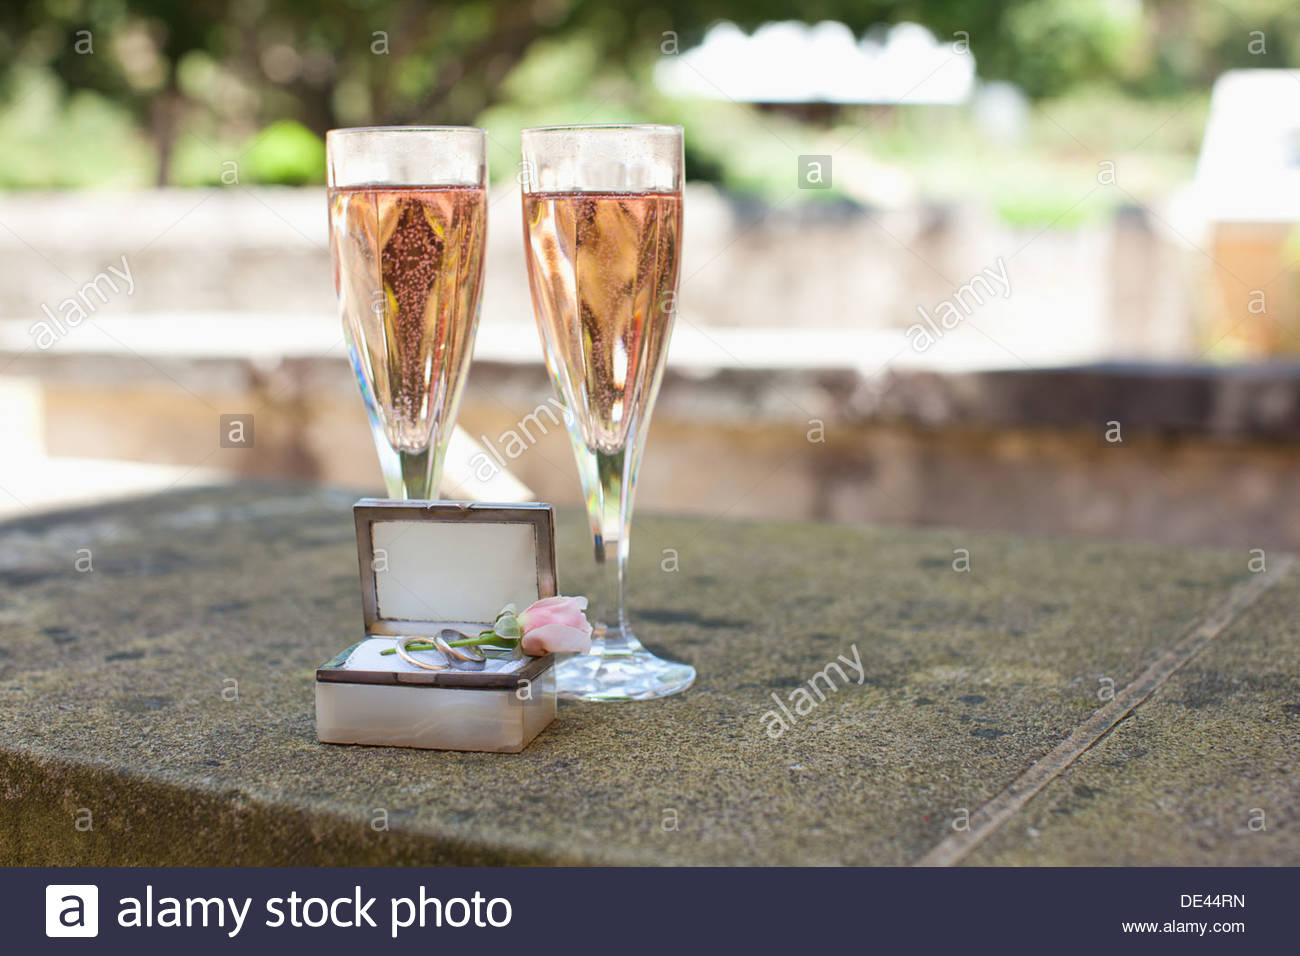 Weddings rings and champagne - Stock Image